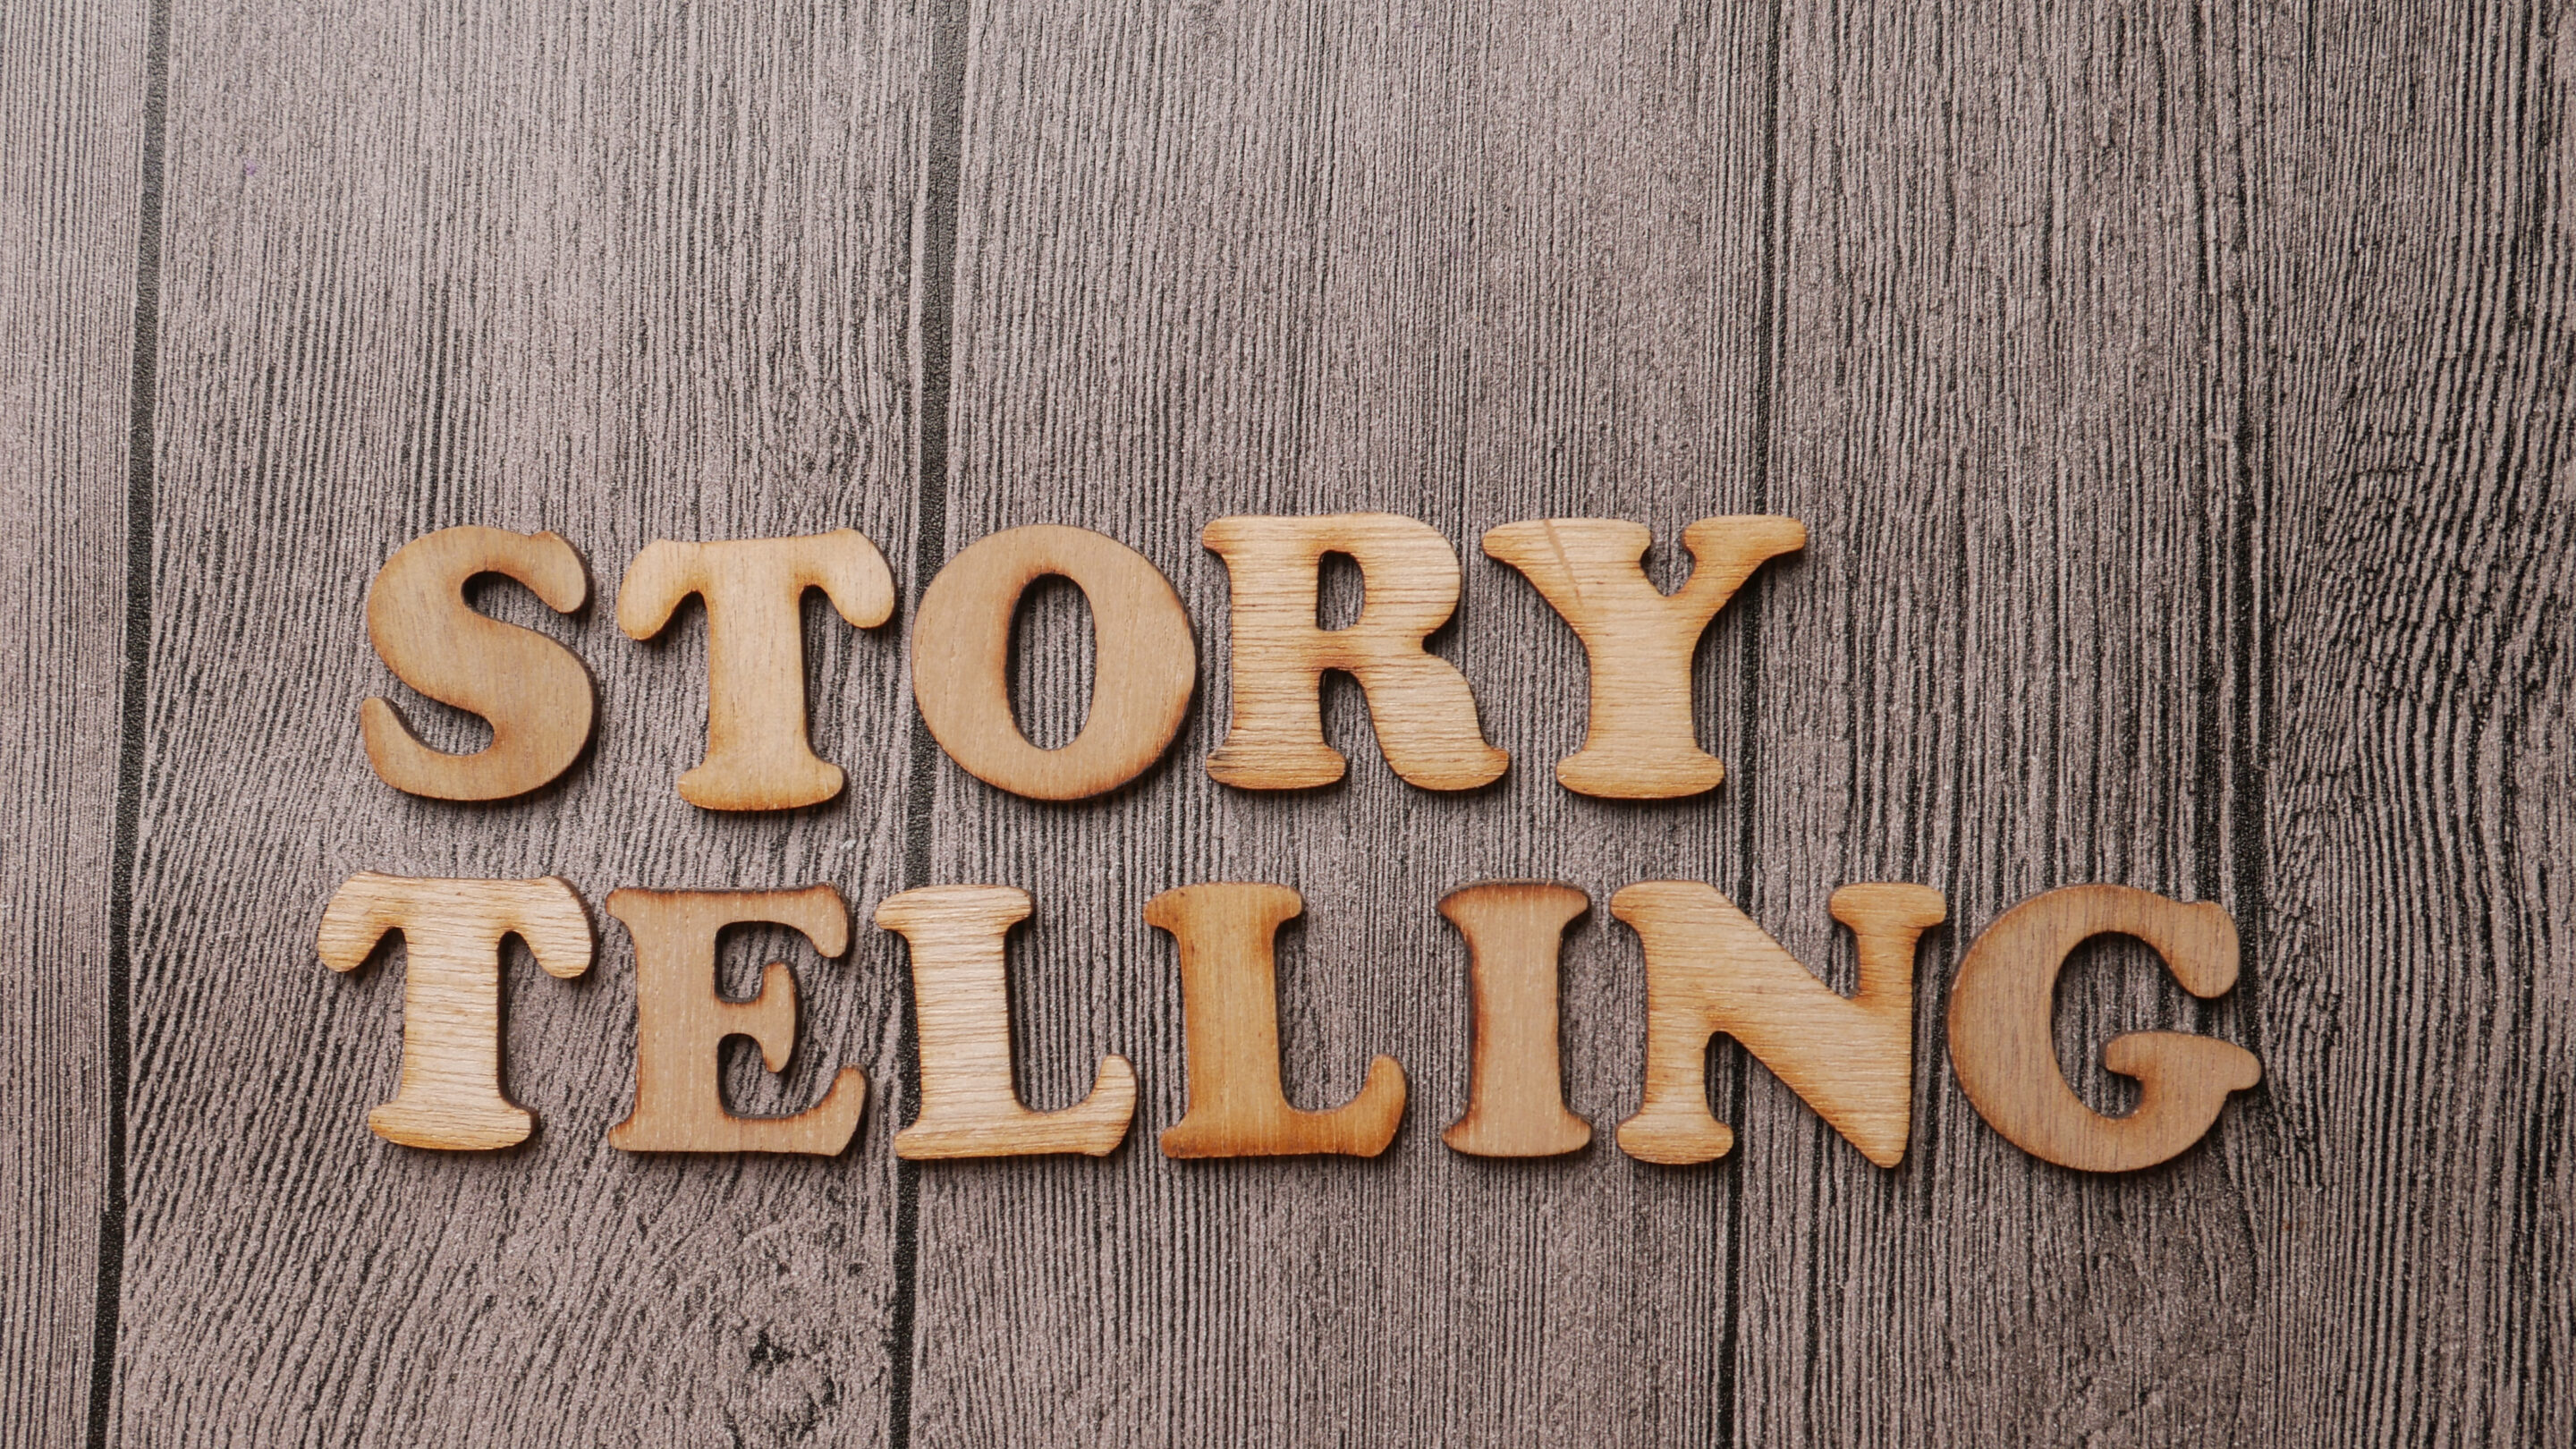 4 Elements of a Good Story